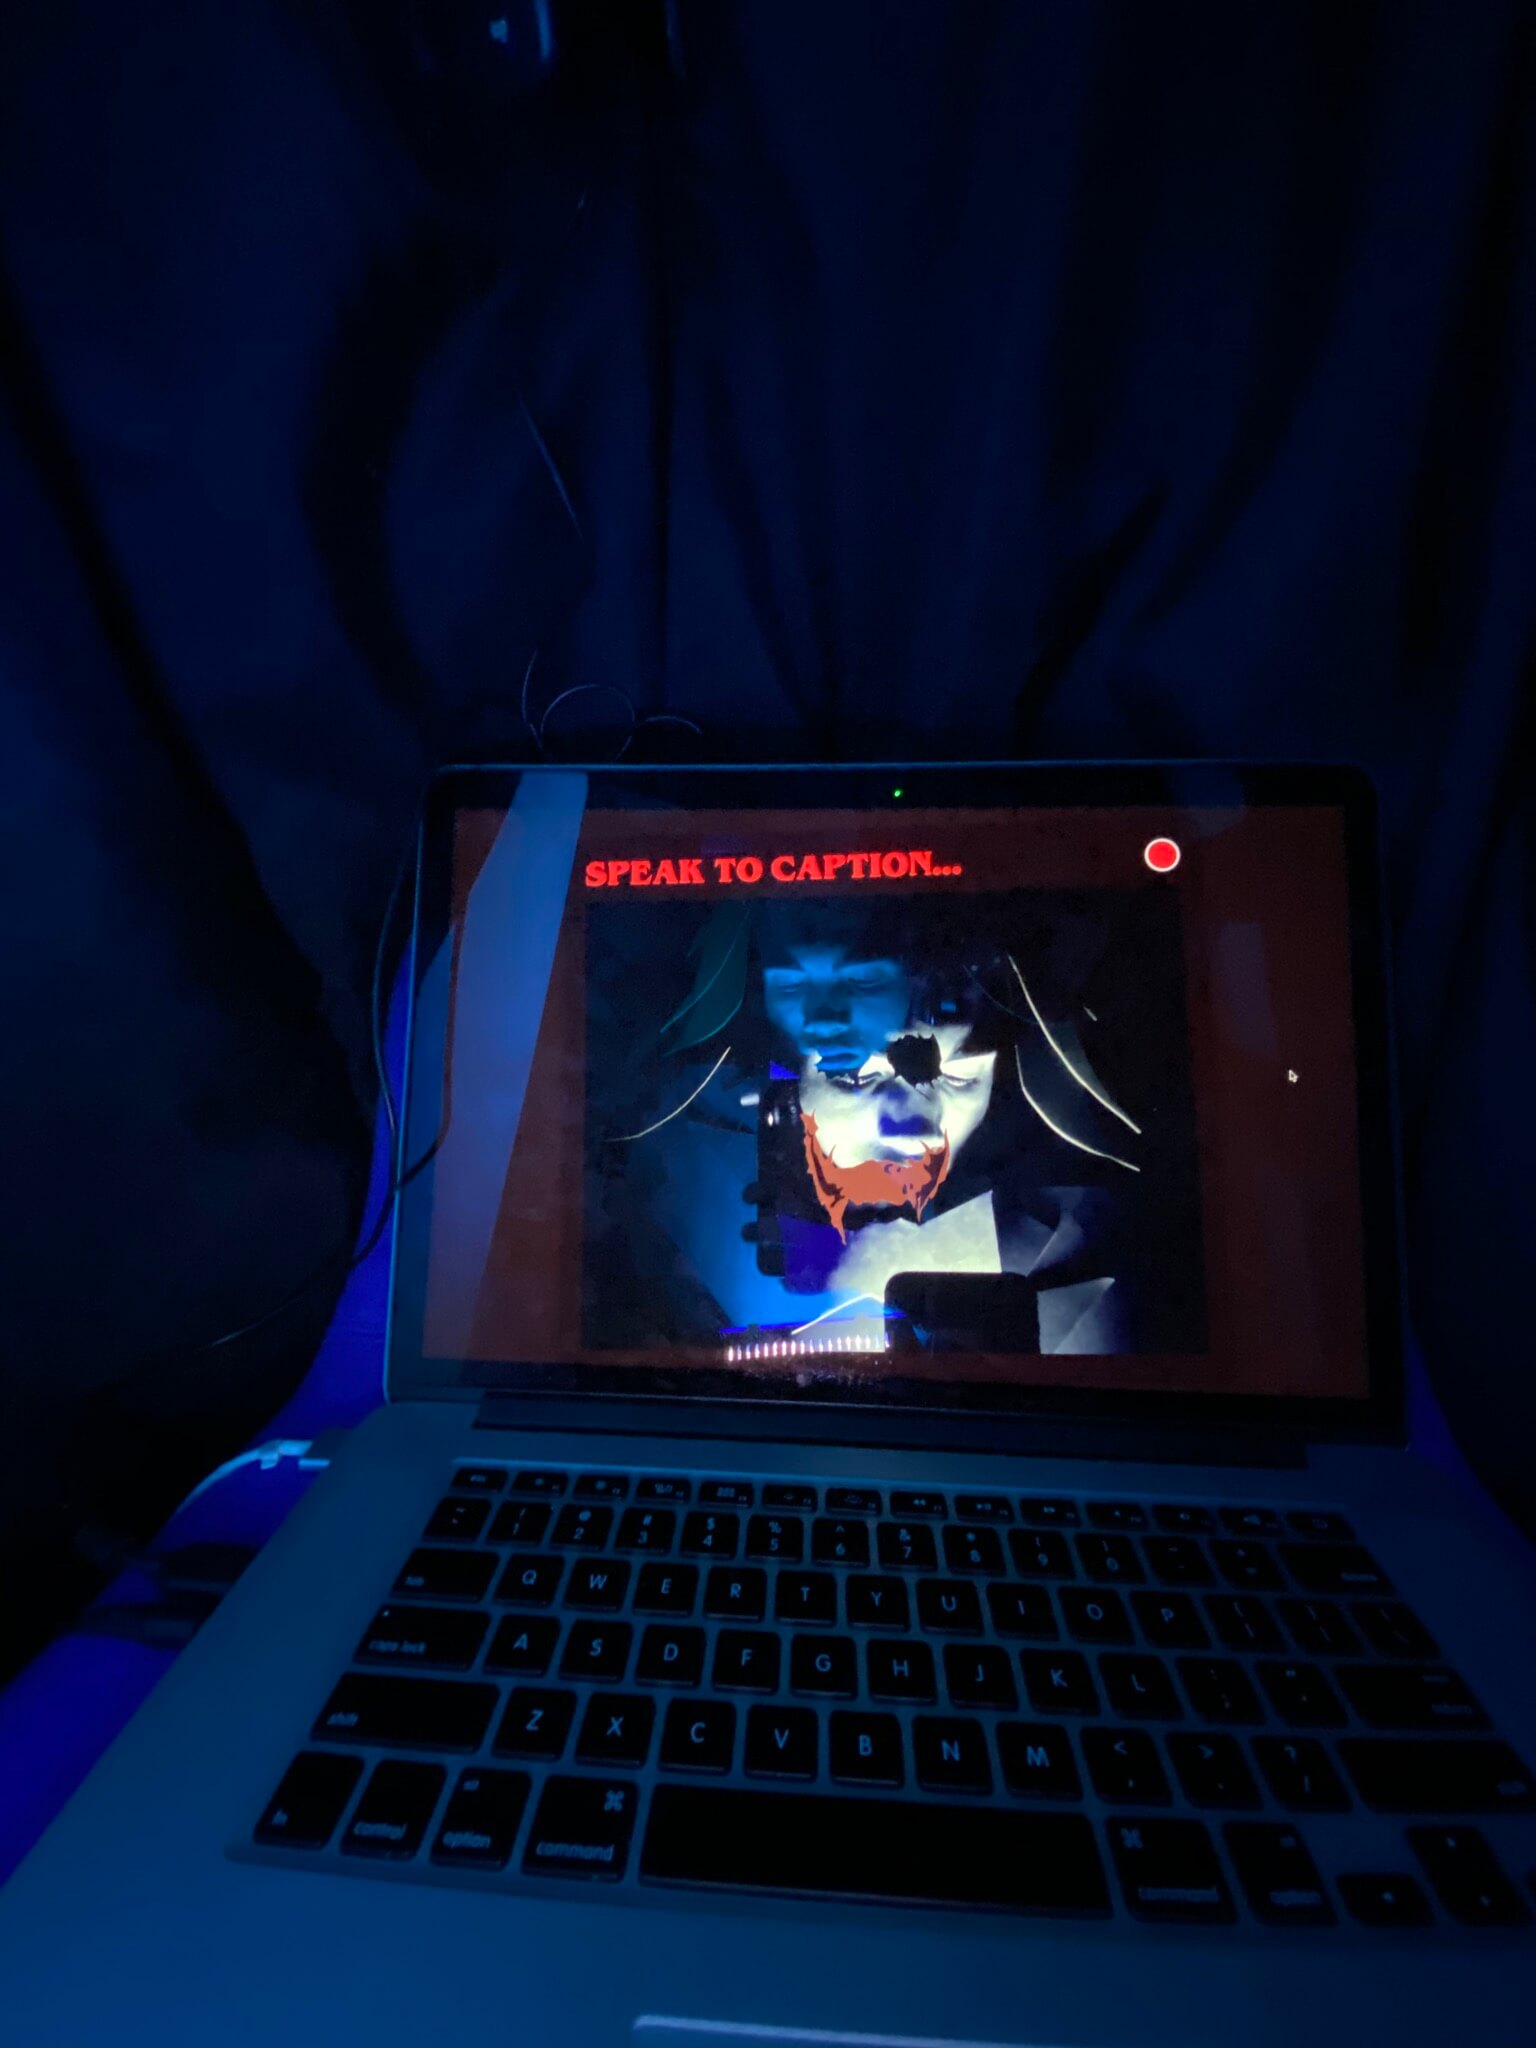 MacBook Pro bathed in blue light with project onscreen